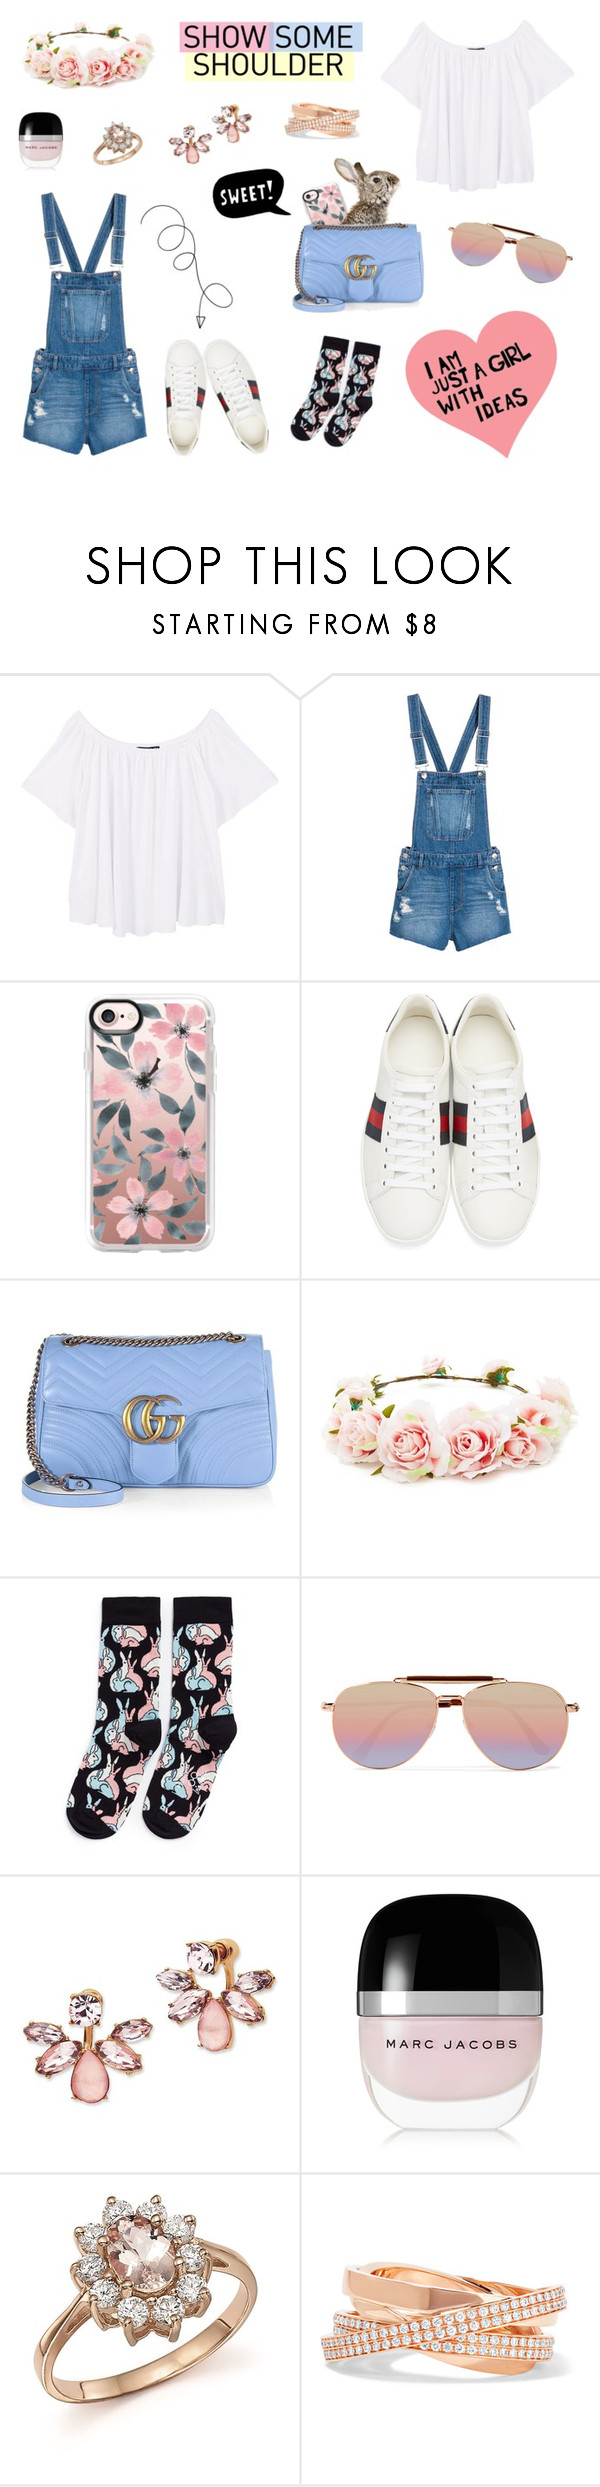 """Easter Outfit 🐰"" by ludmilopez ❤ liked on Polyvore featuring MANGO, Casetify, ESPRIT, Gucci, Forever 21, Happy Socks, Tom Ford, Marchesa, Marc Jacobs and Bloomingdale's"